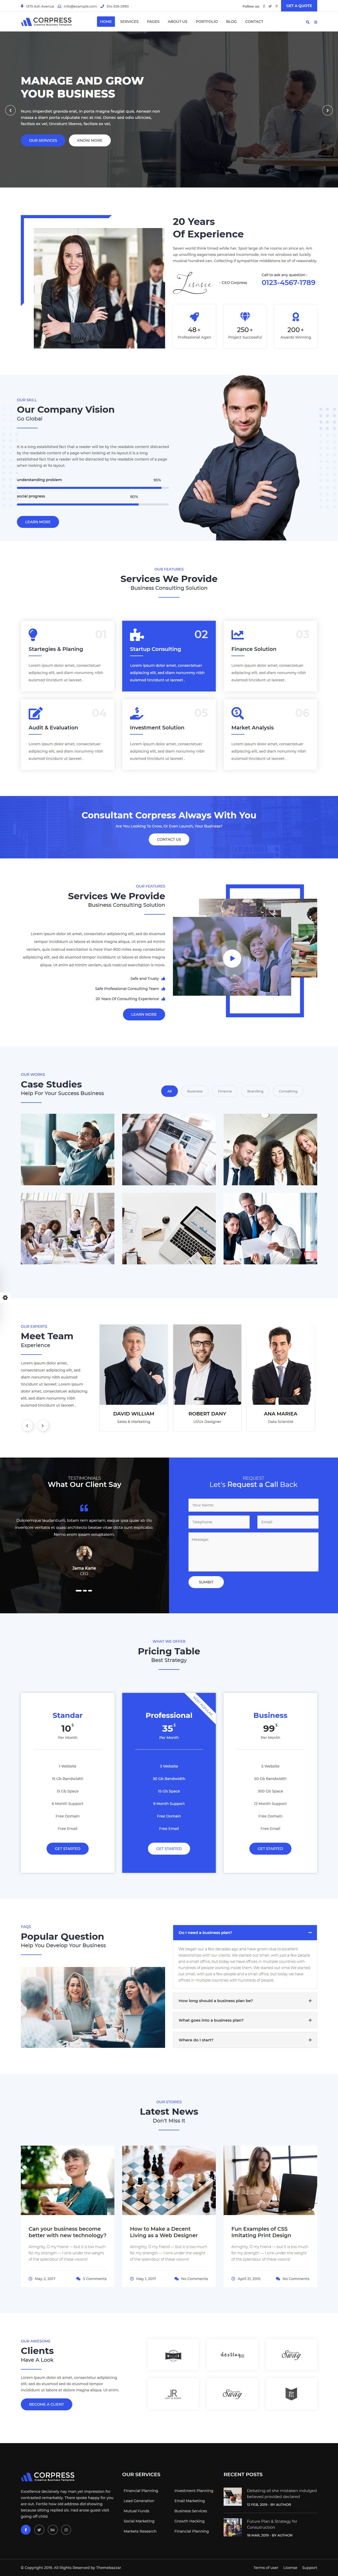 Corpress - Business and Corporate HTML5 Template Screenshot 1